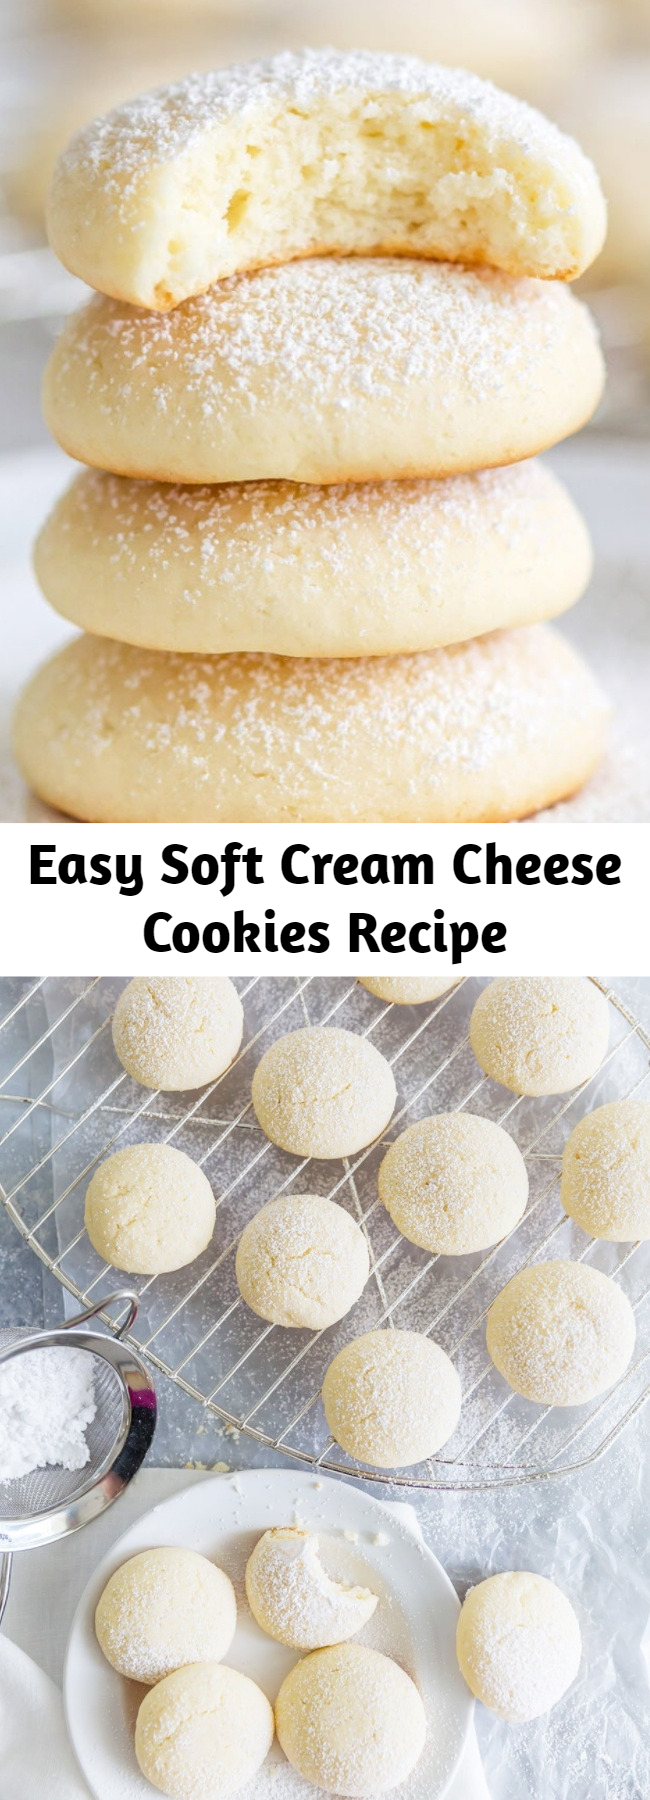 Easy Soft Cream Cheese Cookies Recipe - Pillowy soft cookies that melt in your mouth! Cream cheese cookies are the most heavenly little bites of sweetness! They're addicting; you've been warned! #creamcheesecookies